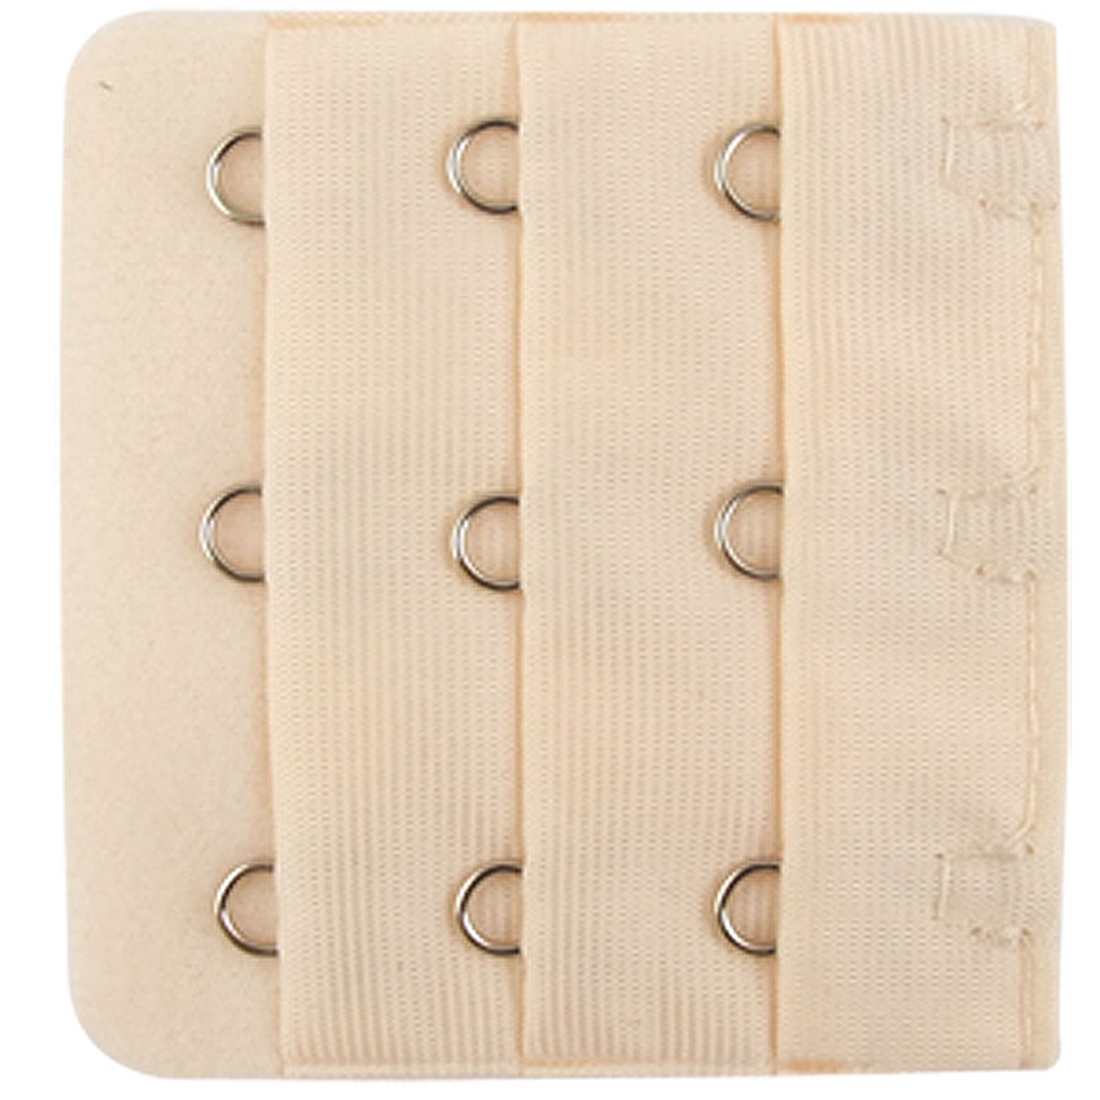 Woman 5 Pcs Beige 3 x 3 Hooks Bra Extender Hook and Eye Tape